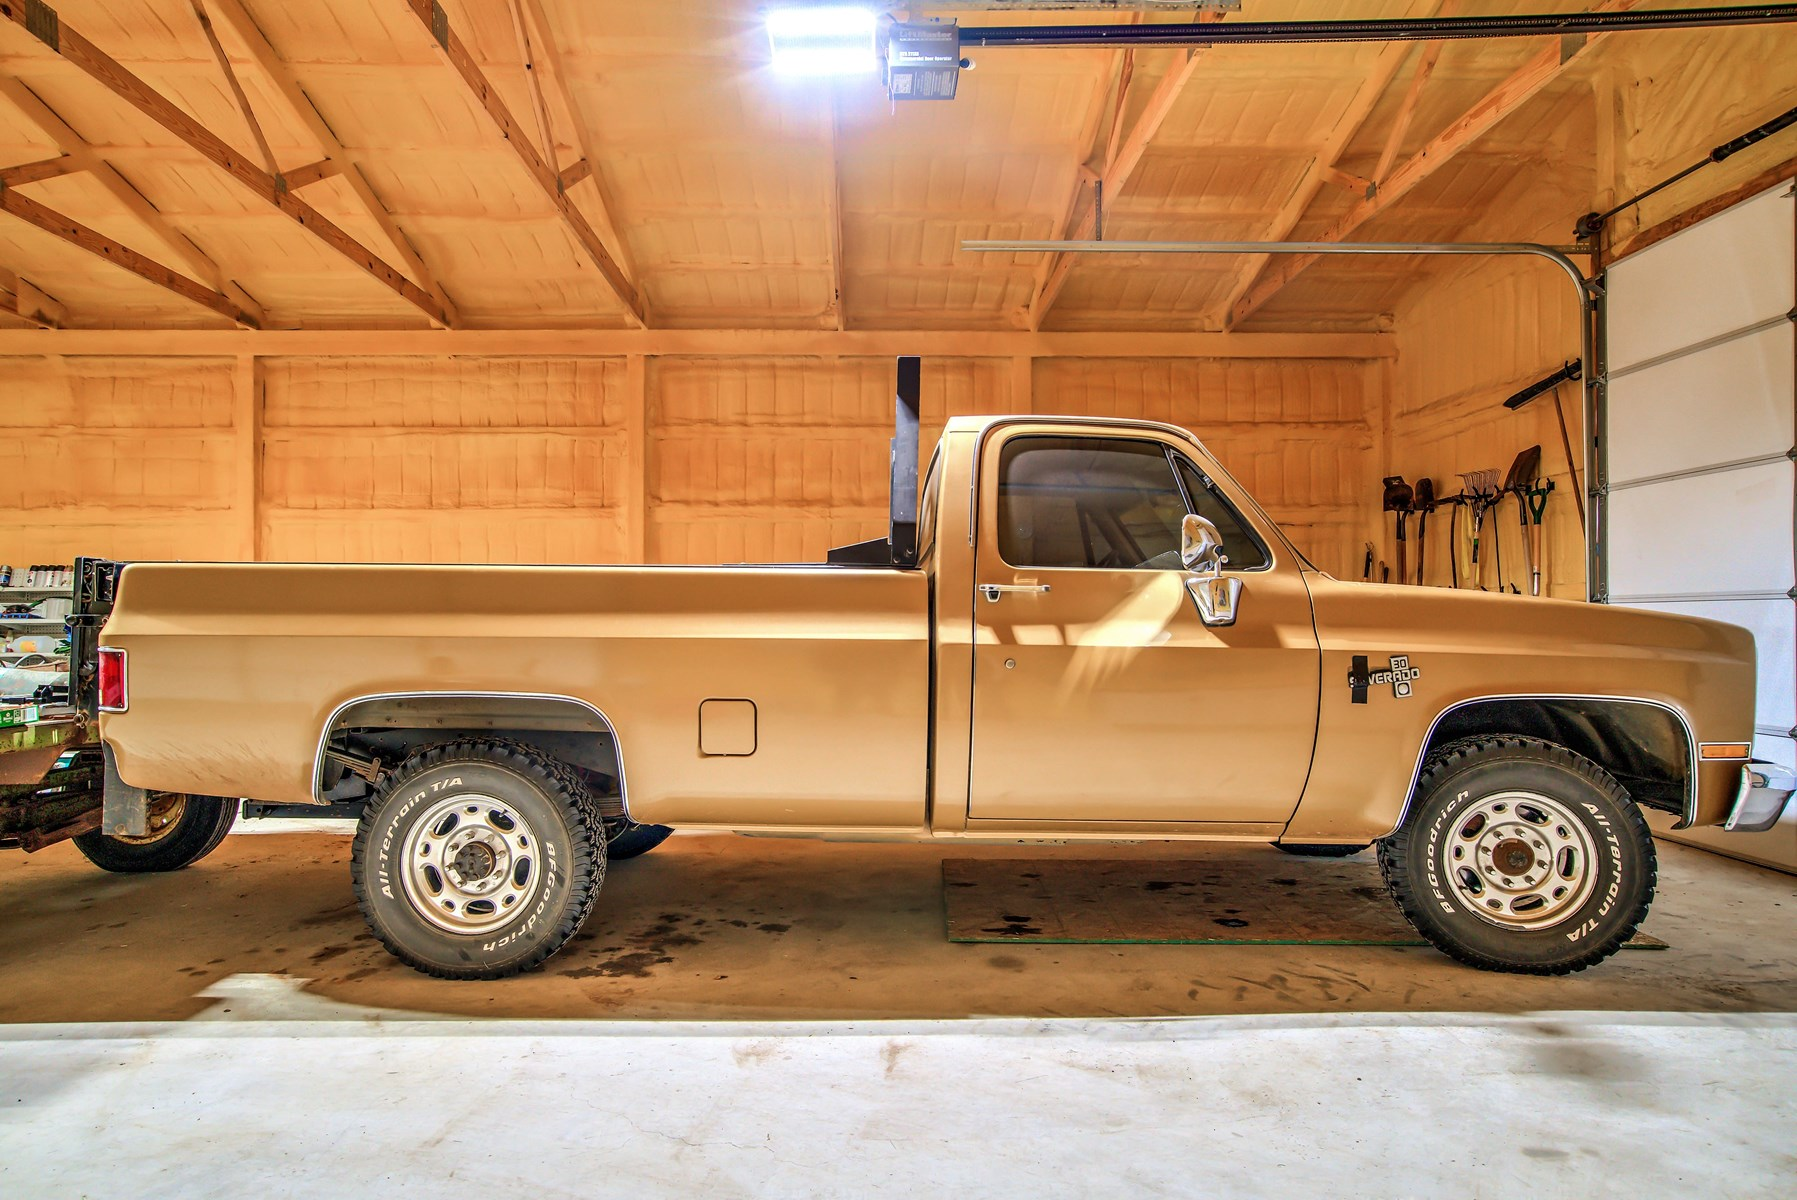 Chevy Truck, Farm Implements, Deer Stand, Tools, Appliances for Sale